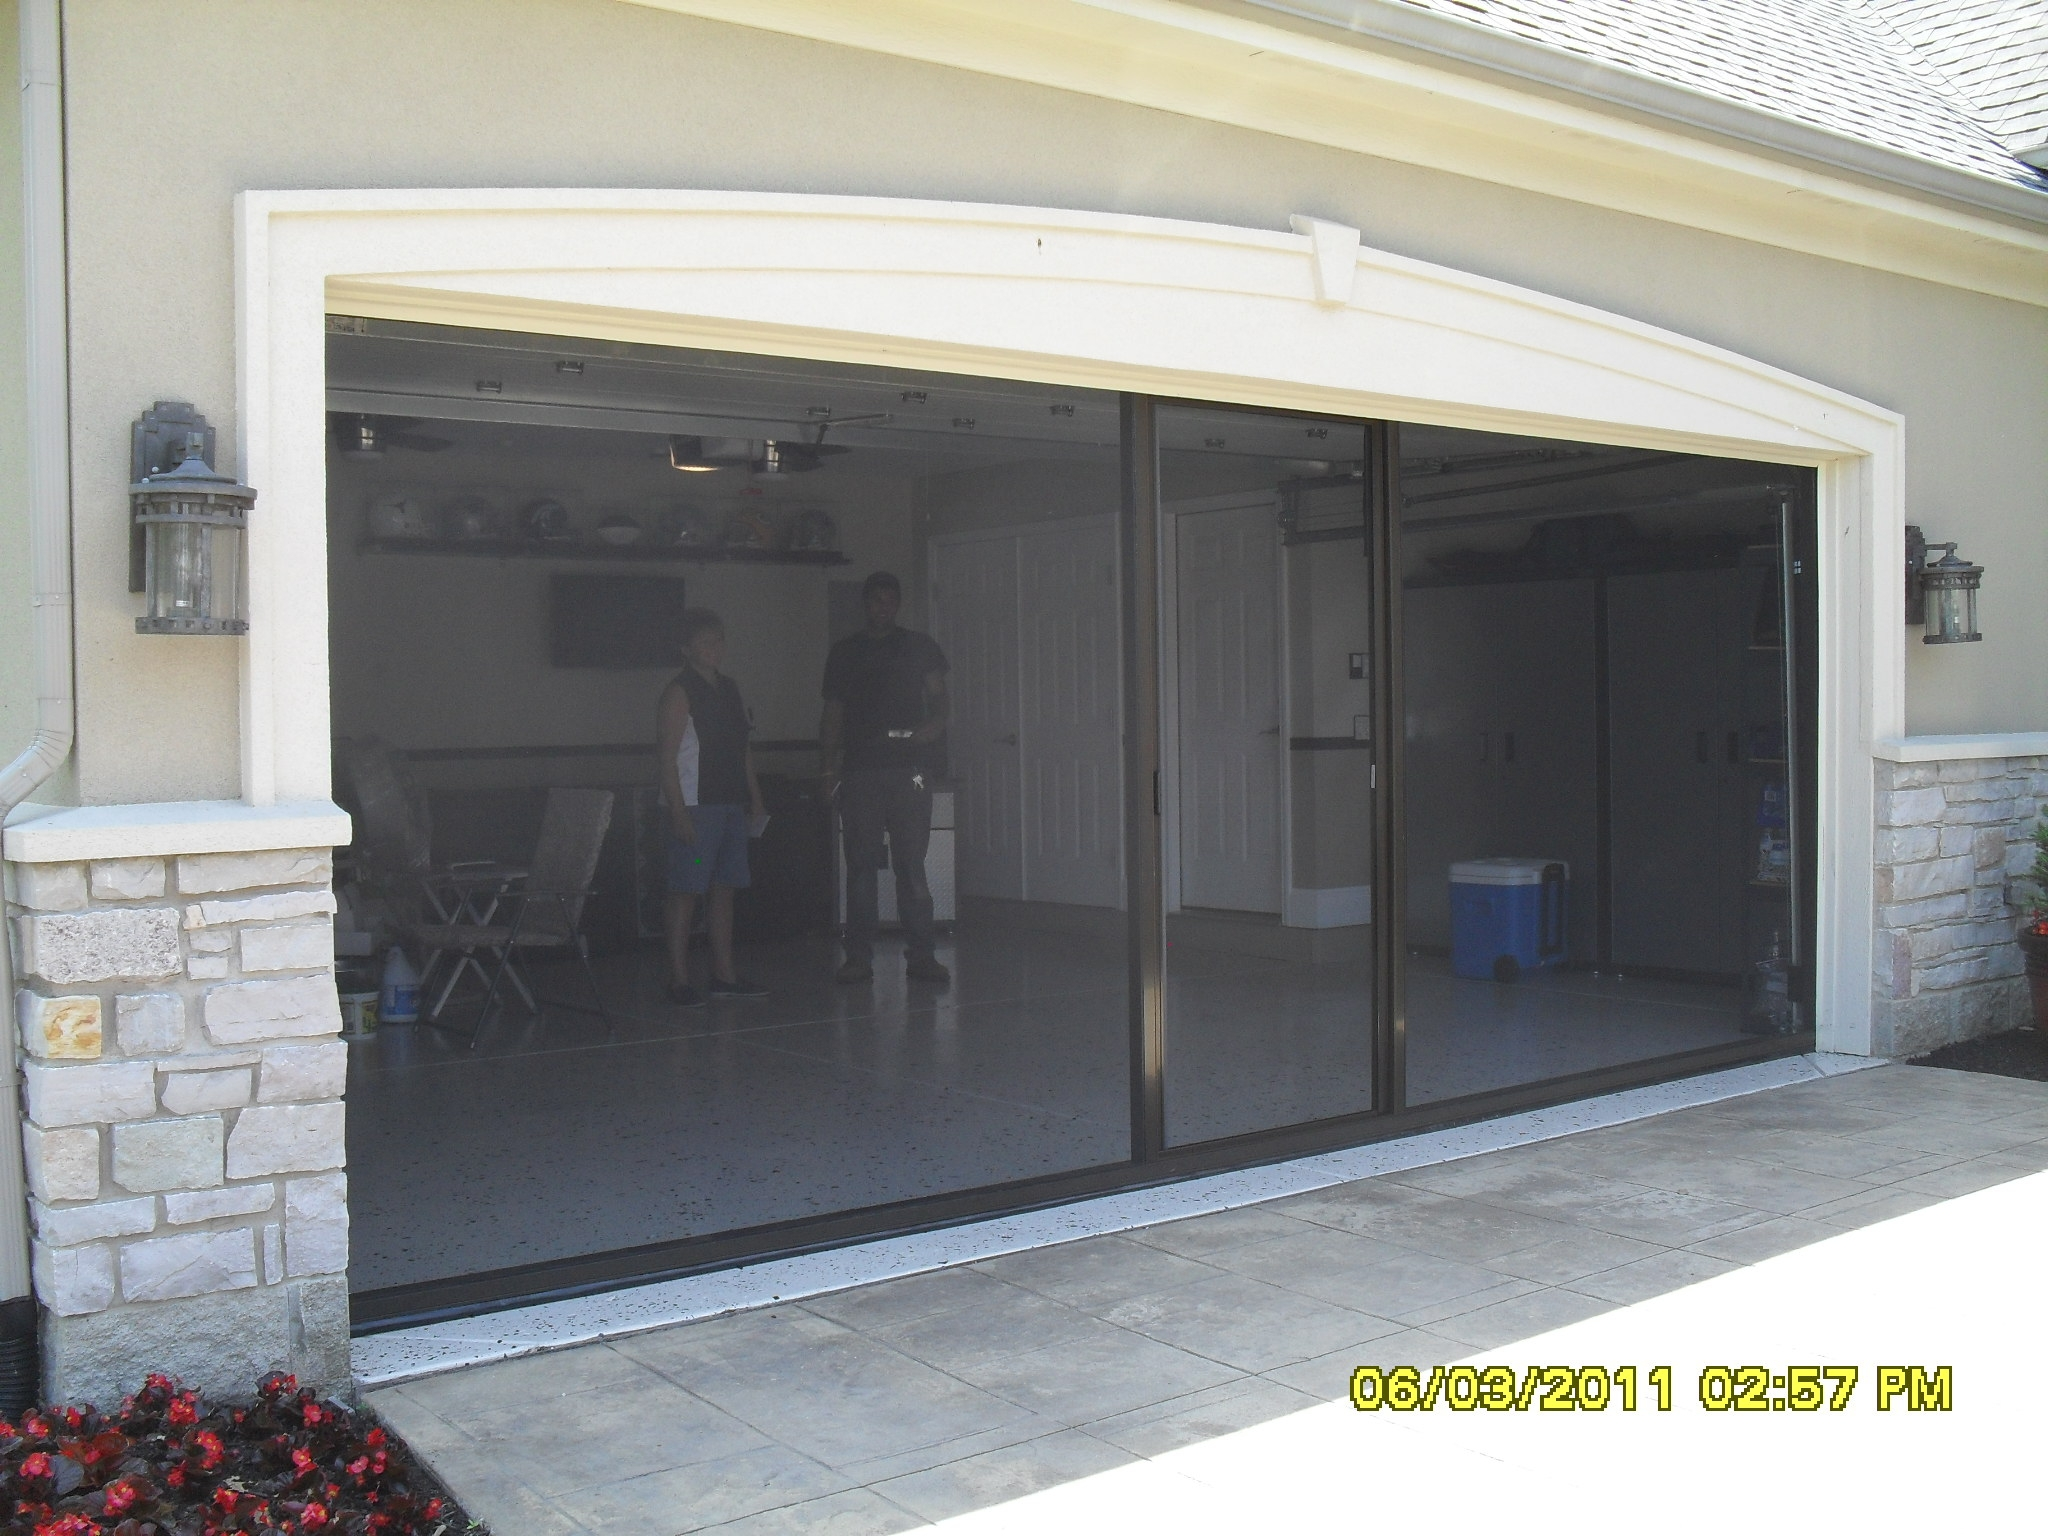 Sliding Garage Screen Door HardwareSliding Garage Screen Door Hardware